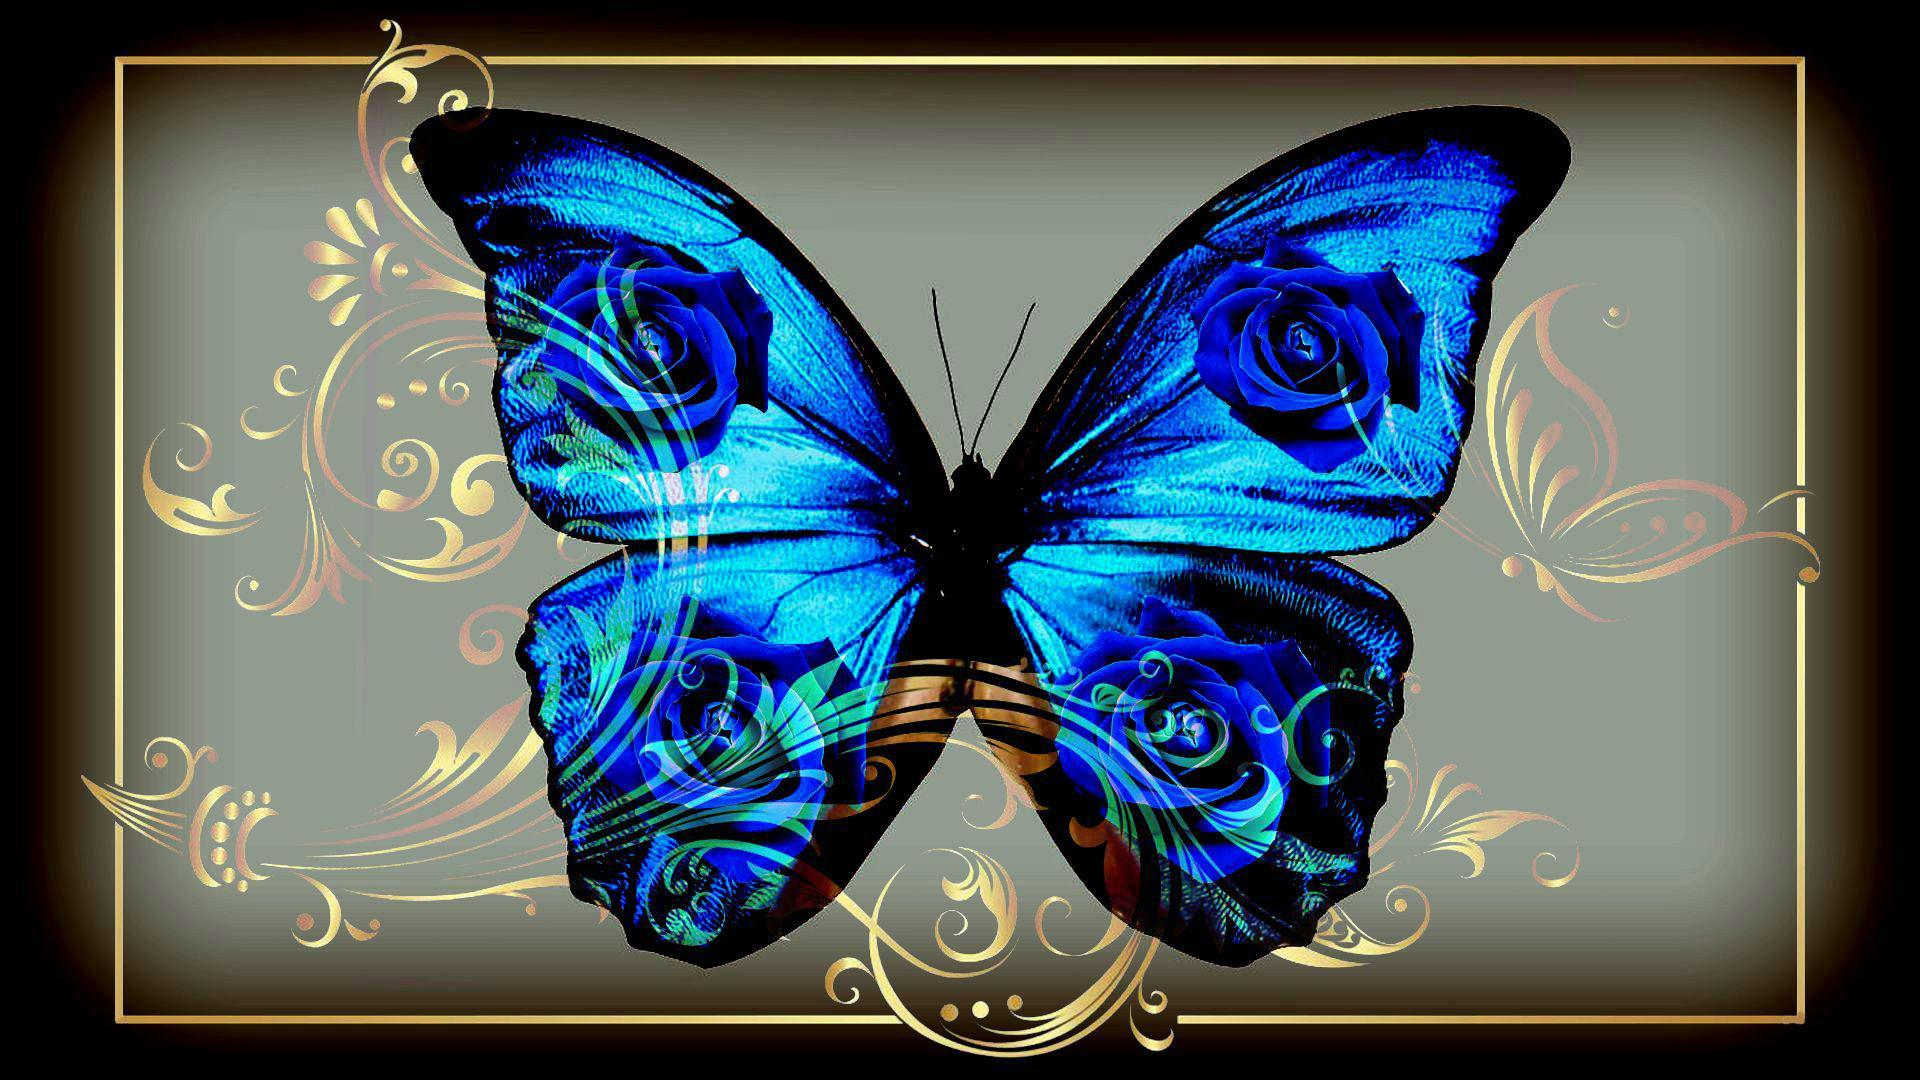 Blue Butterfly Full HD Wallpaper And Background Image